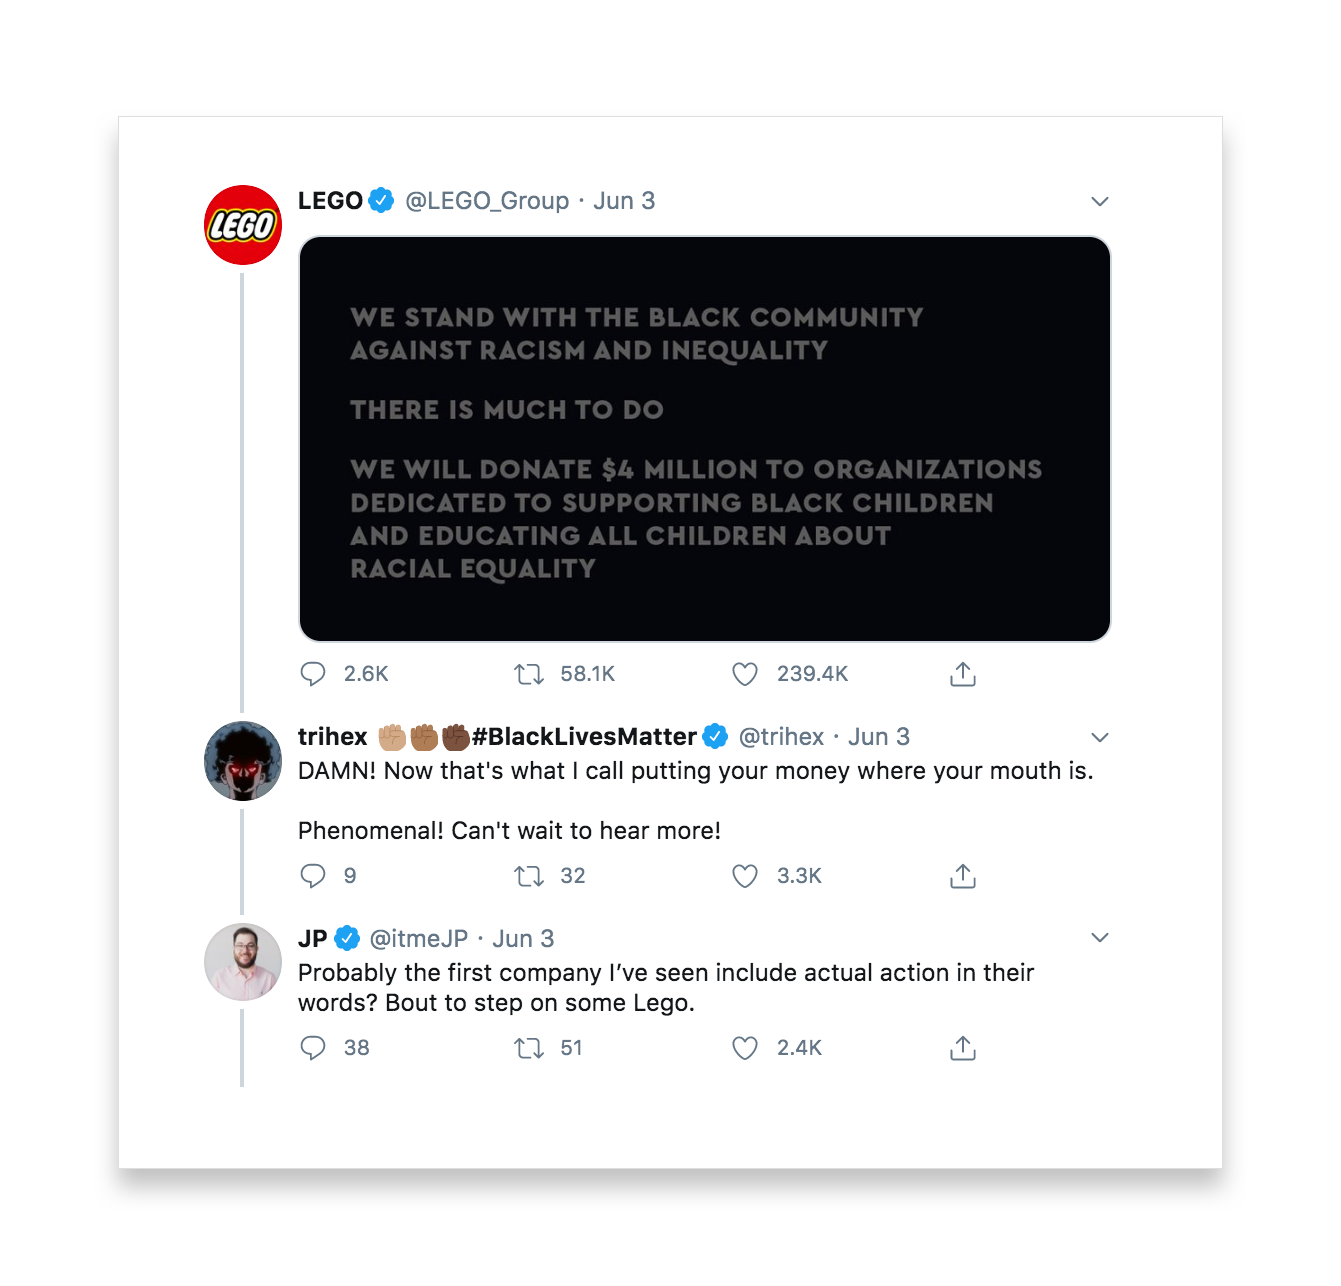 This tweet by LEGO reads We stand with the Black community against racism and inequality. There is much to do. We will donate $4 million to organizations dedicated to supporting Black children and educating all children about racial equality. trihex replies DAMN! now that's what I call putting your money where your mouth is. Phenomenal! Can't wait to hear more. JP also replies and says Probably the first company I've seen include actual action in their words? Bout to step on some Lego